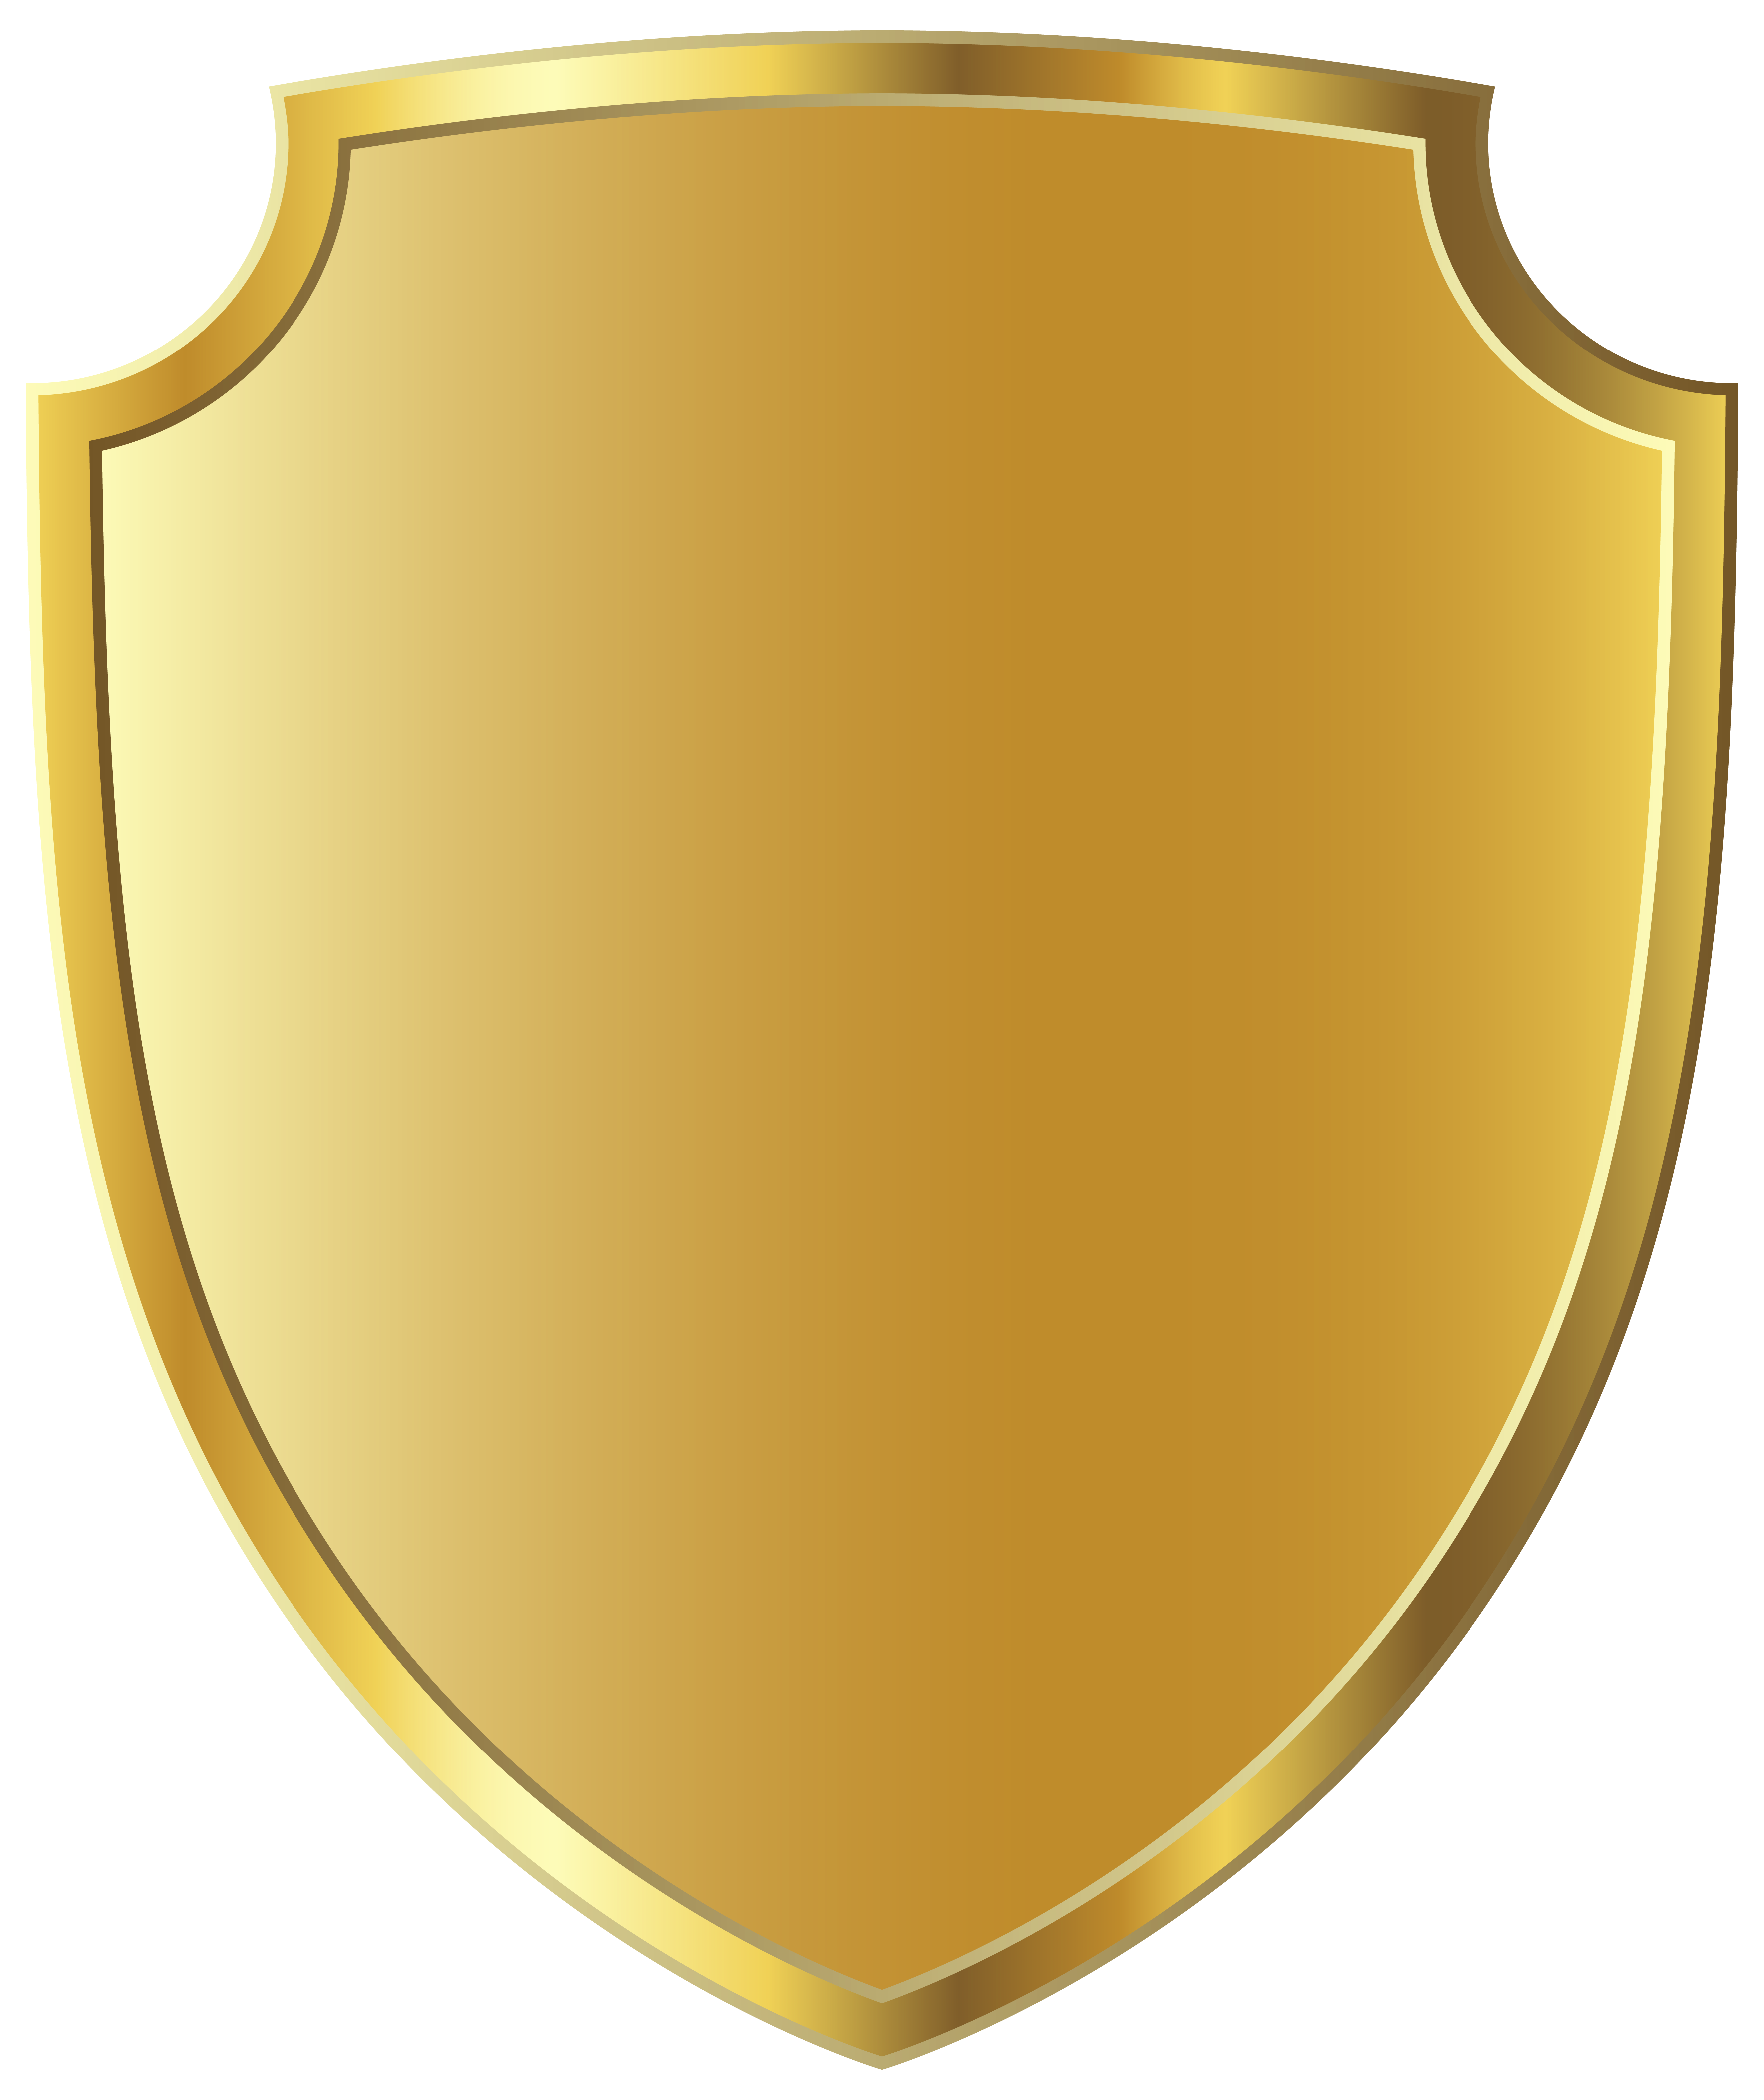 Gold badge template png. Clipart shield frame